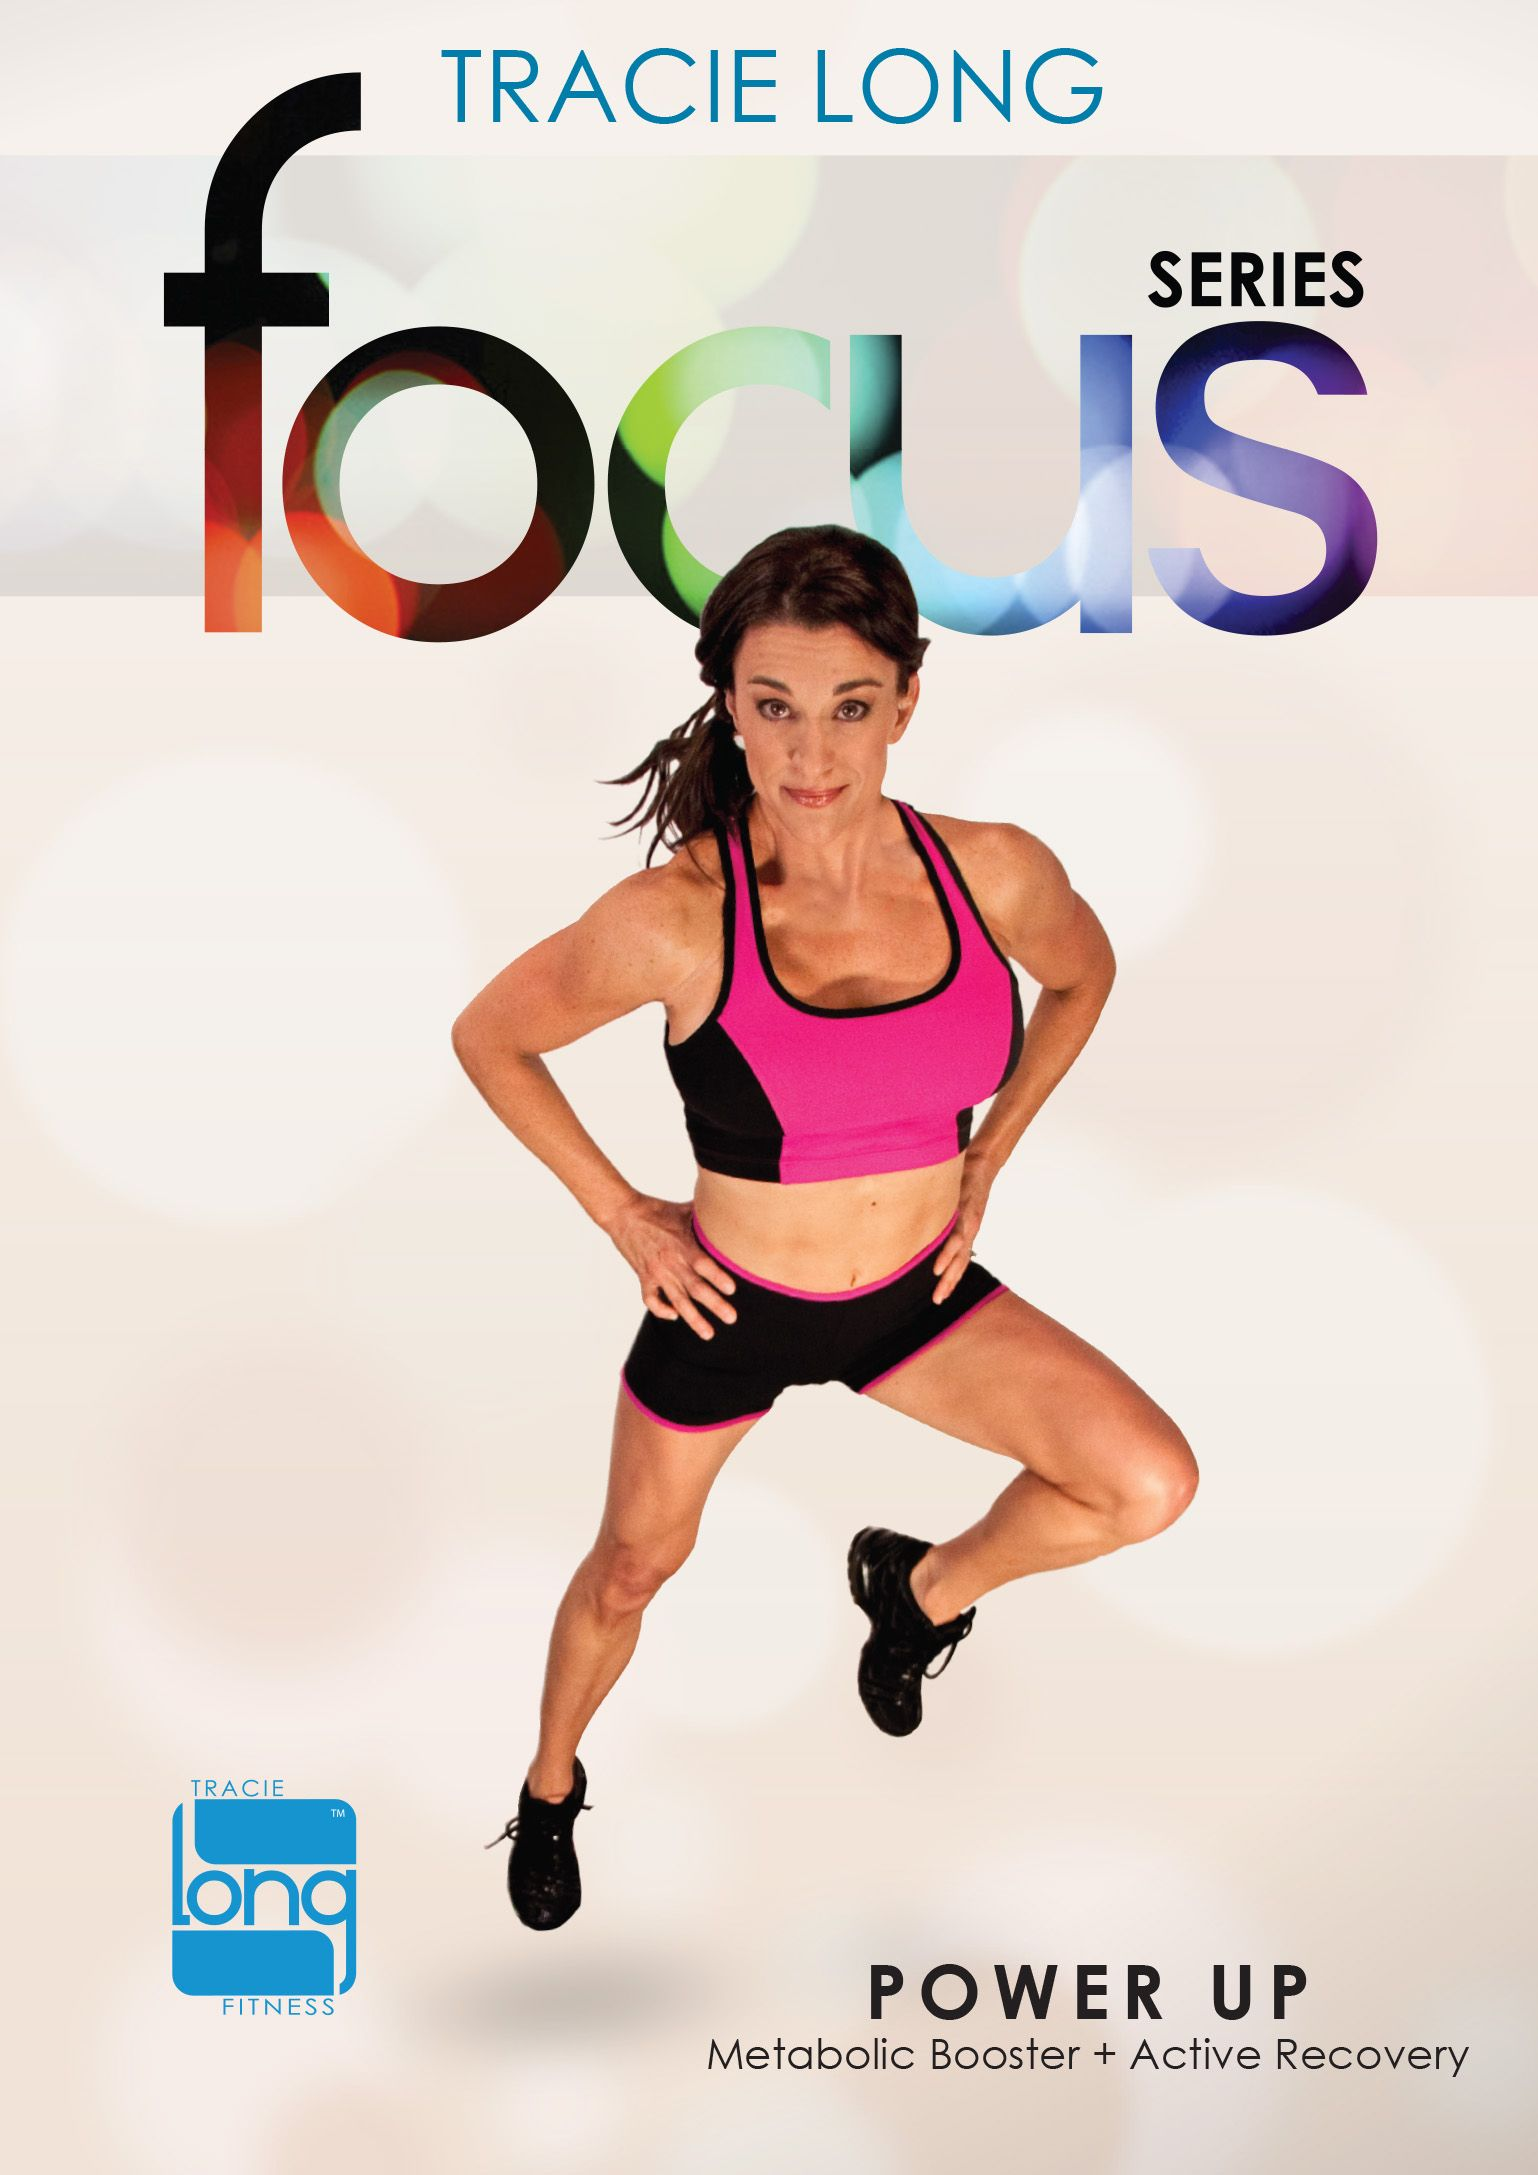 Tracie Long: Focus Series, Vol. 3 - Power Up